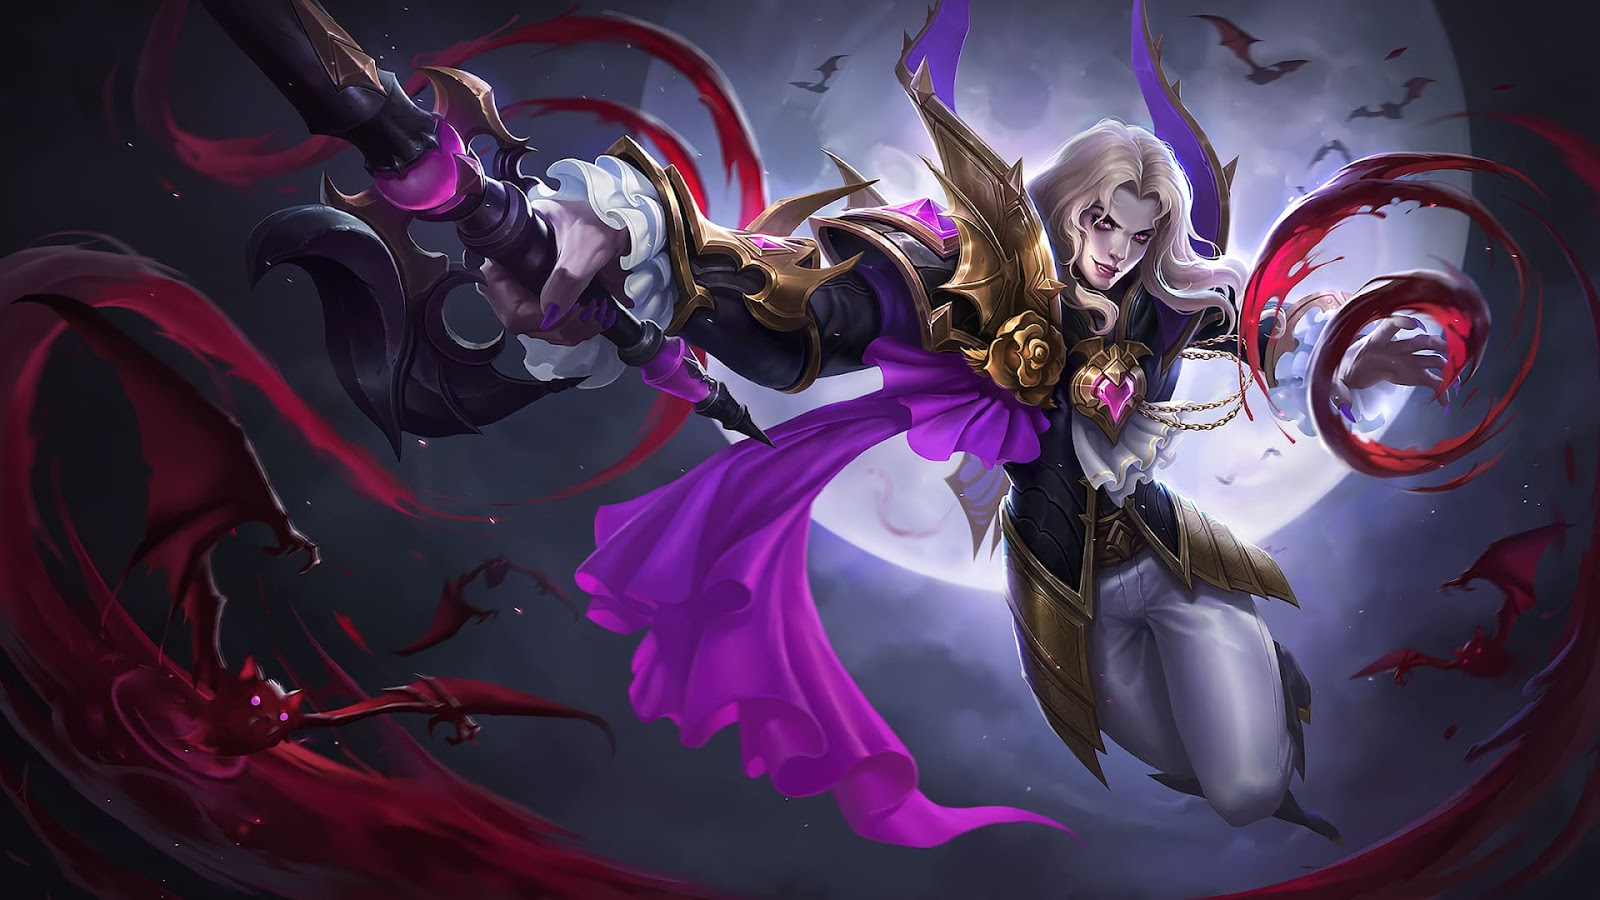 Wallpaper Lancelot Dark Earl Skin Mobile Legends HD for PC